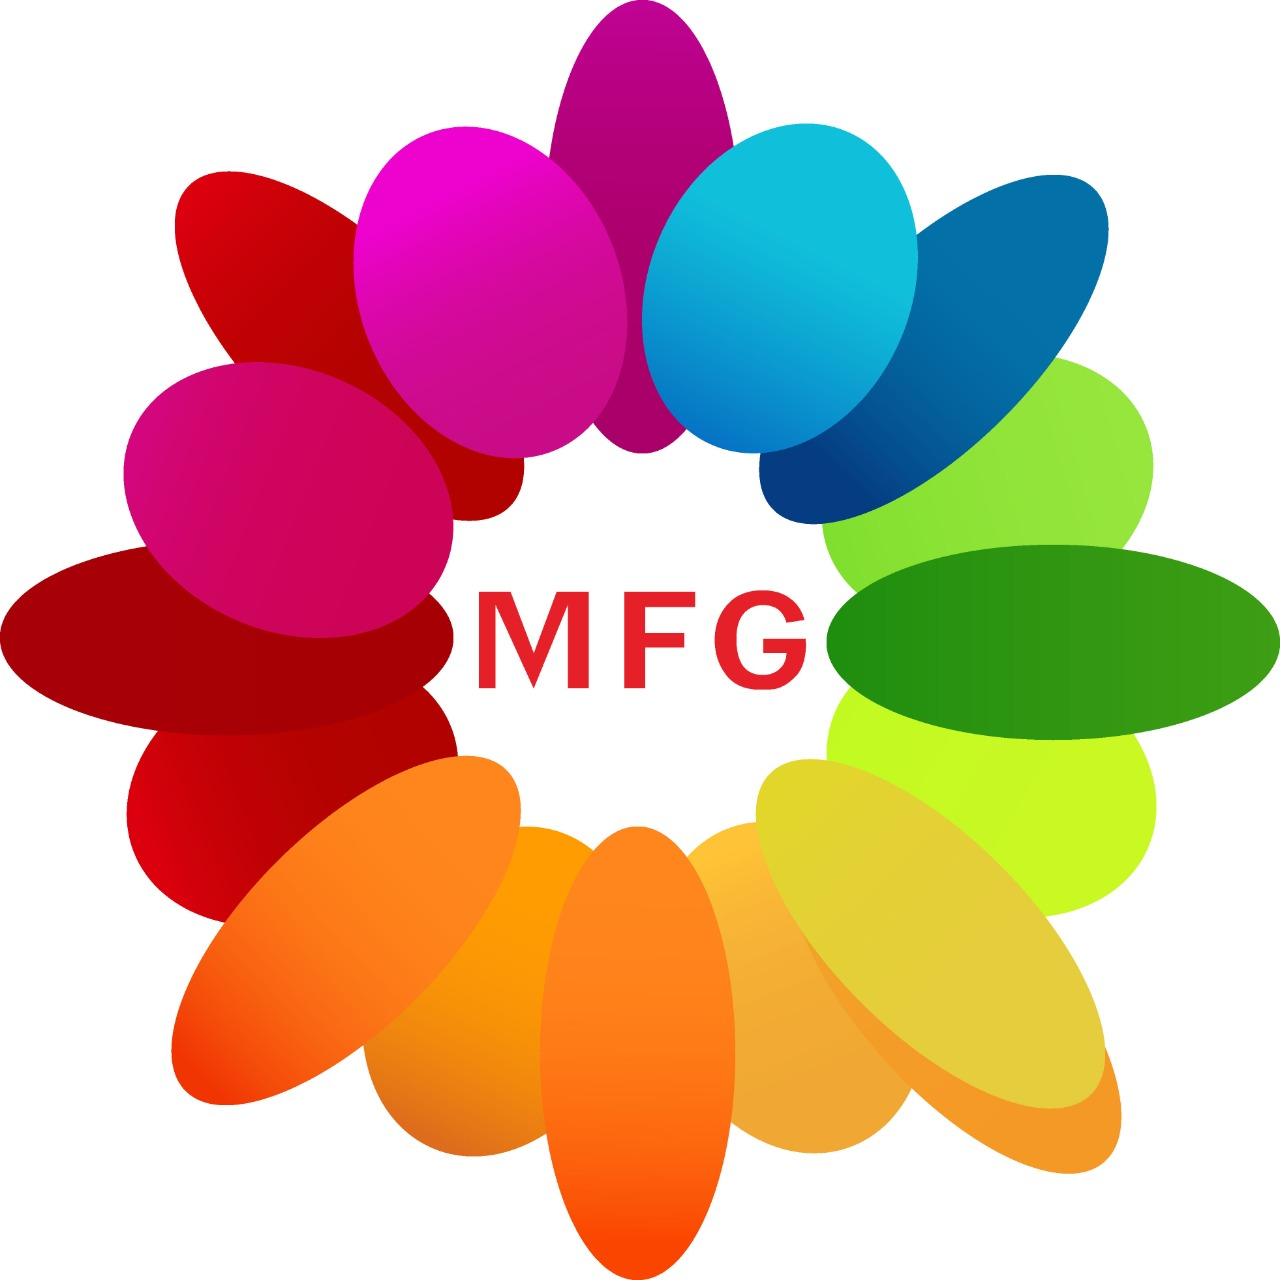 12 Red Roses Bunch With 16 Pcs Ferrero Rocher Chocolate